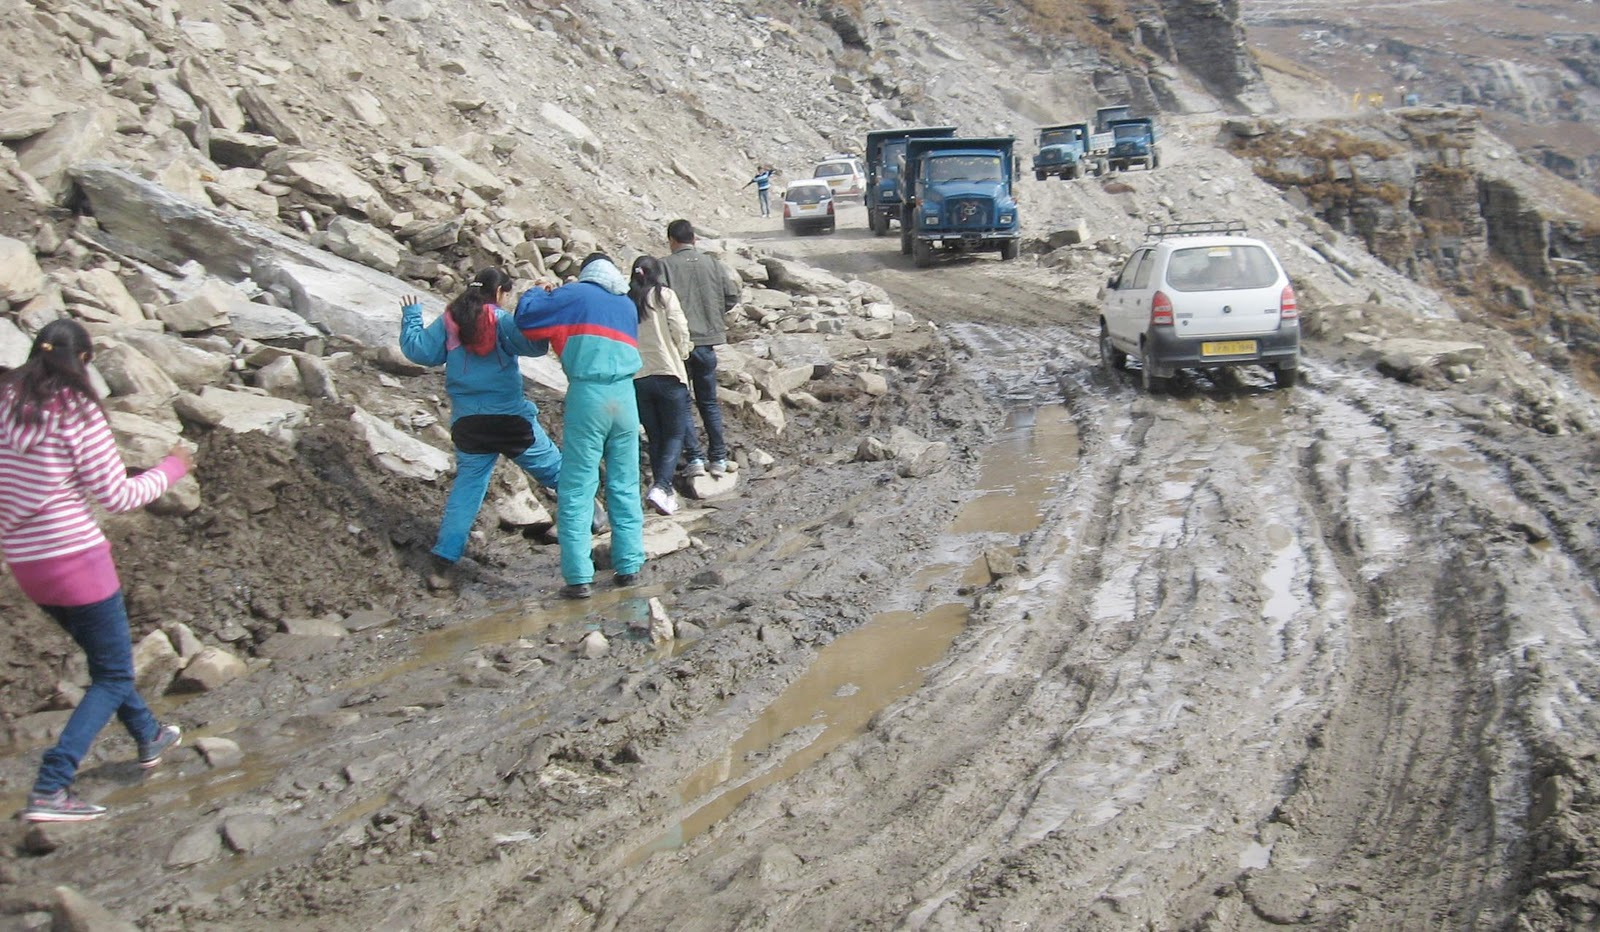 Tourists crossing the slushy road on foot below Rohtang pass